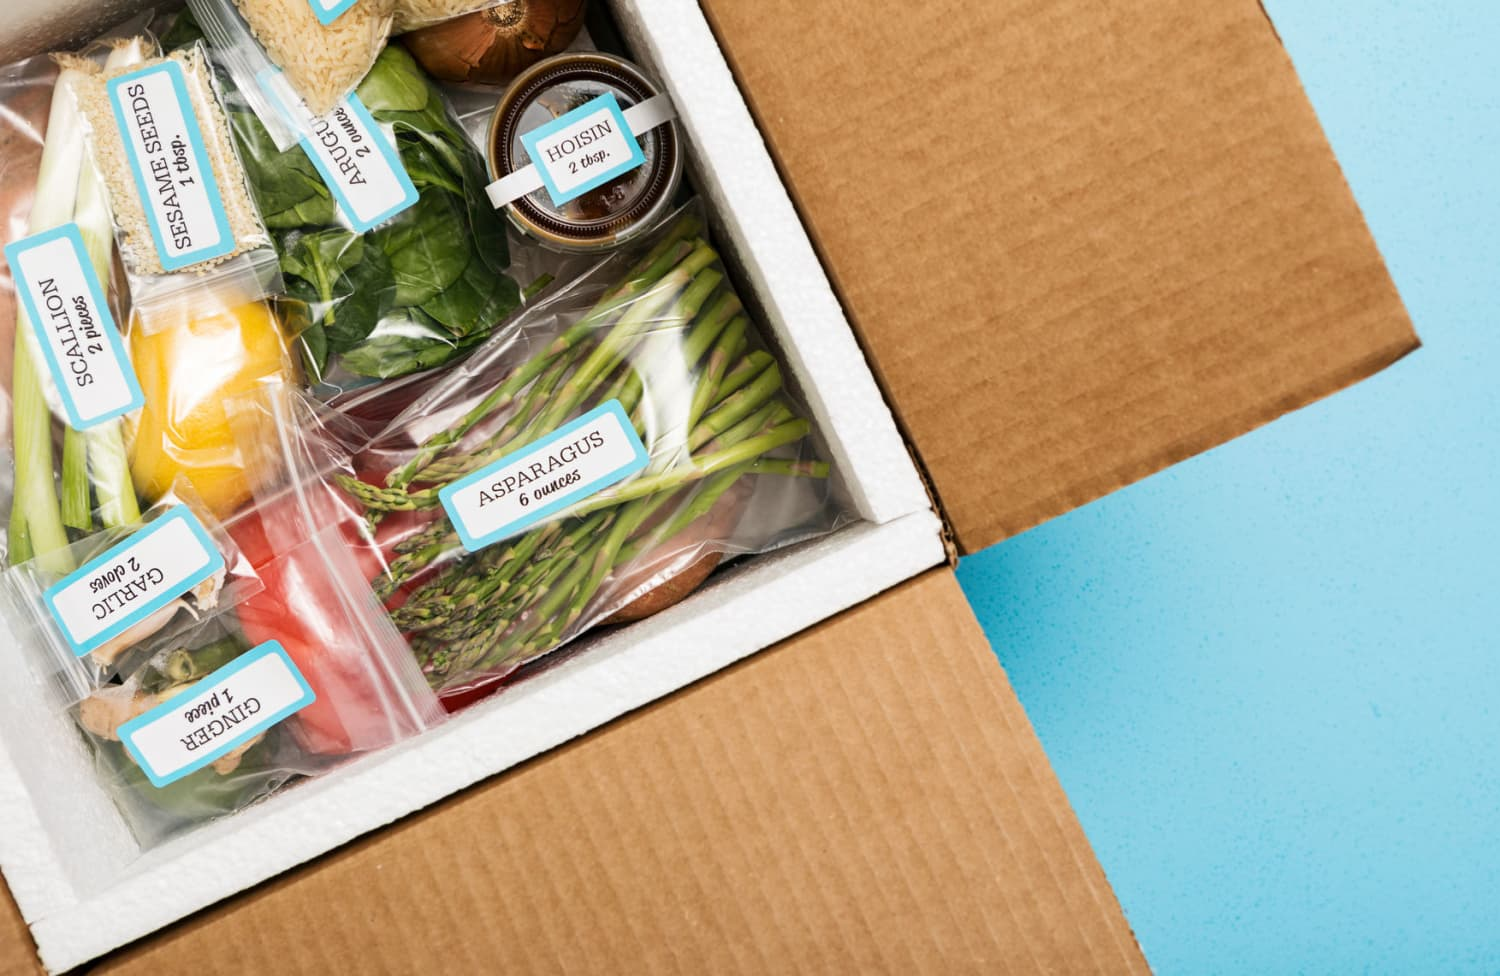 You Can Now Buy Food Subscription Boxes on Amazon — Here Are Our 5 Favorites